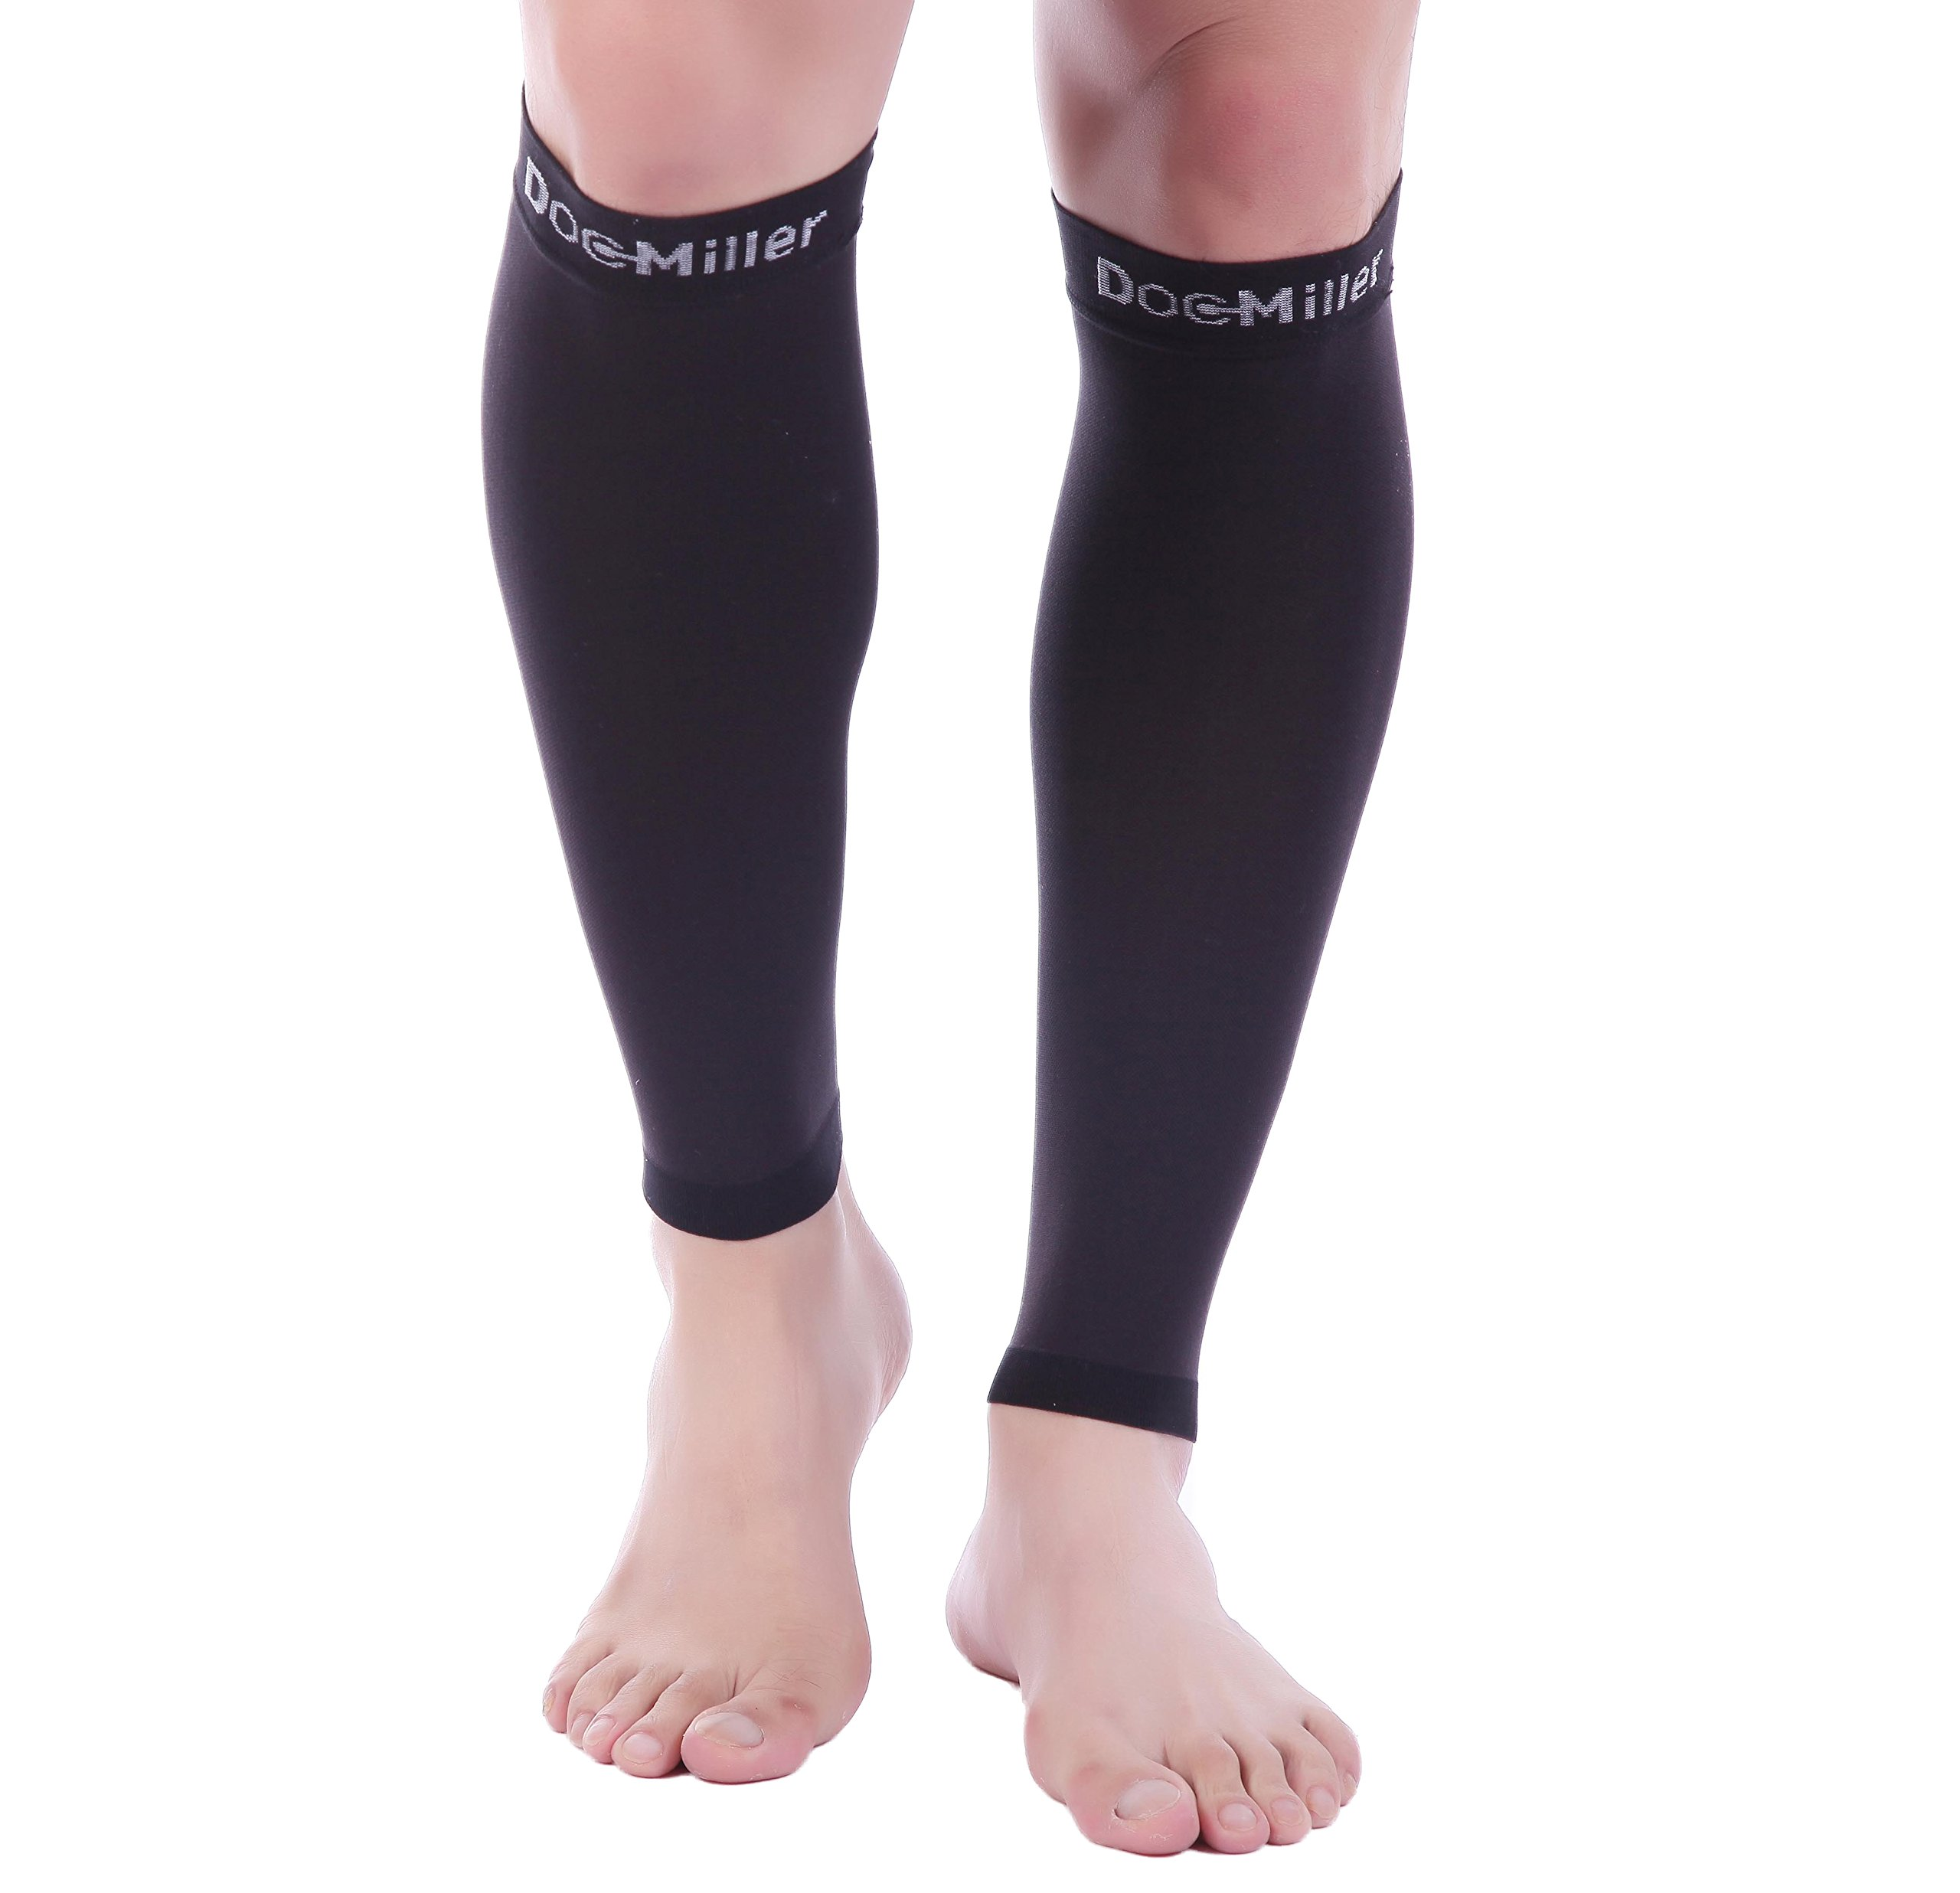 Doc Miller Premium Calf Compression Sleeve 1 Pair 20-30mmHg Strong Calf Support Multiple Colors Graduated Pressure for Sports Running Muscle Recovery Shin Splints Varicose Veins (Black, Small)